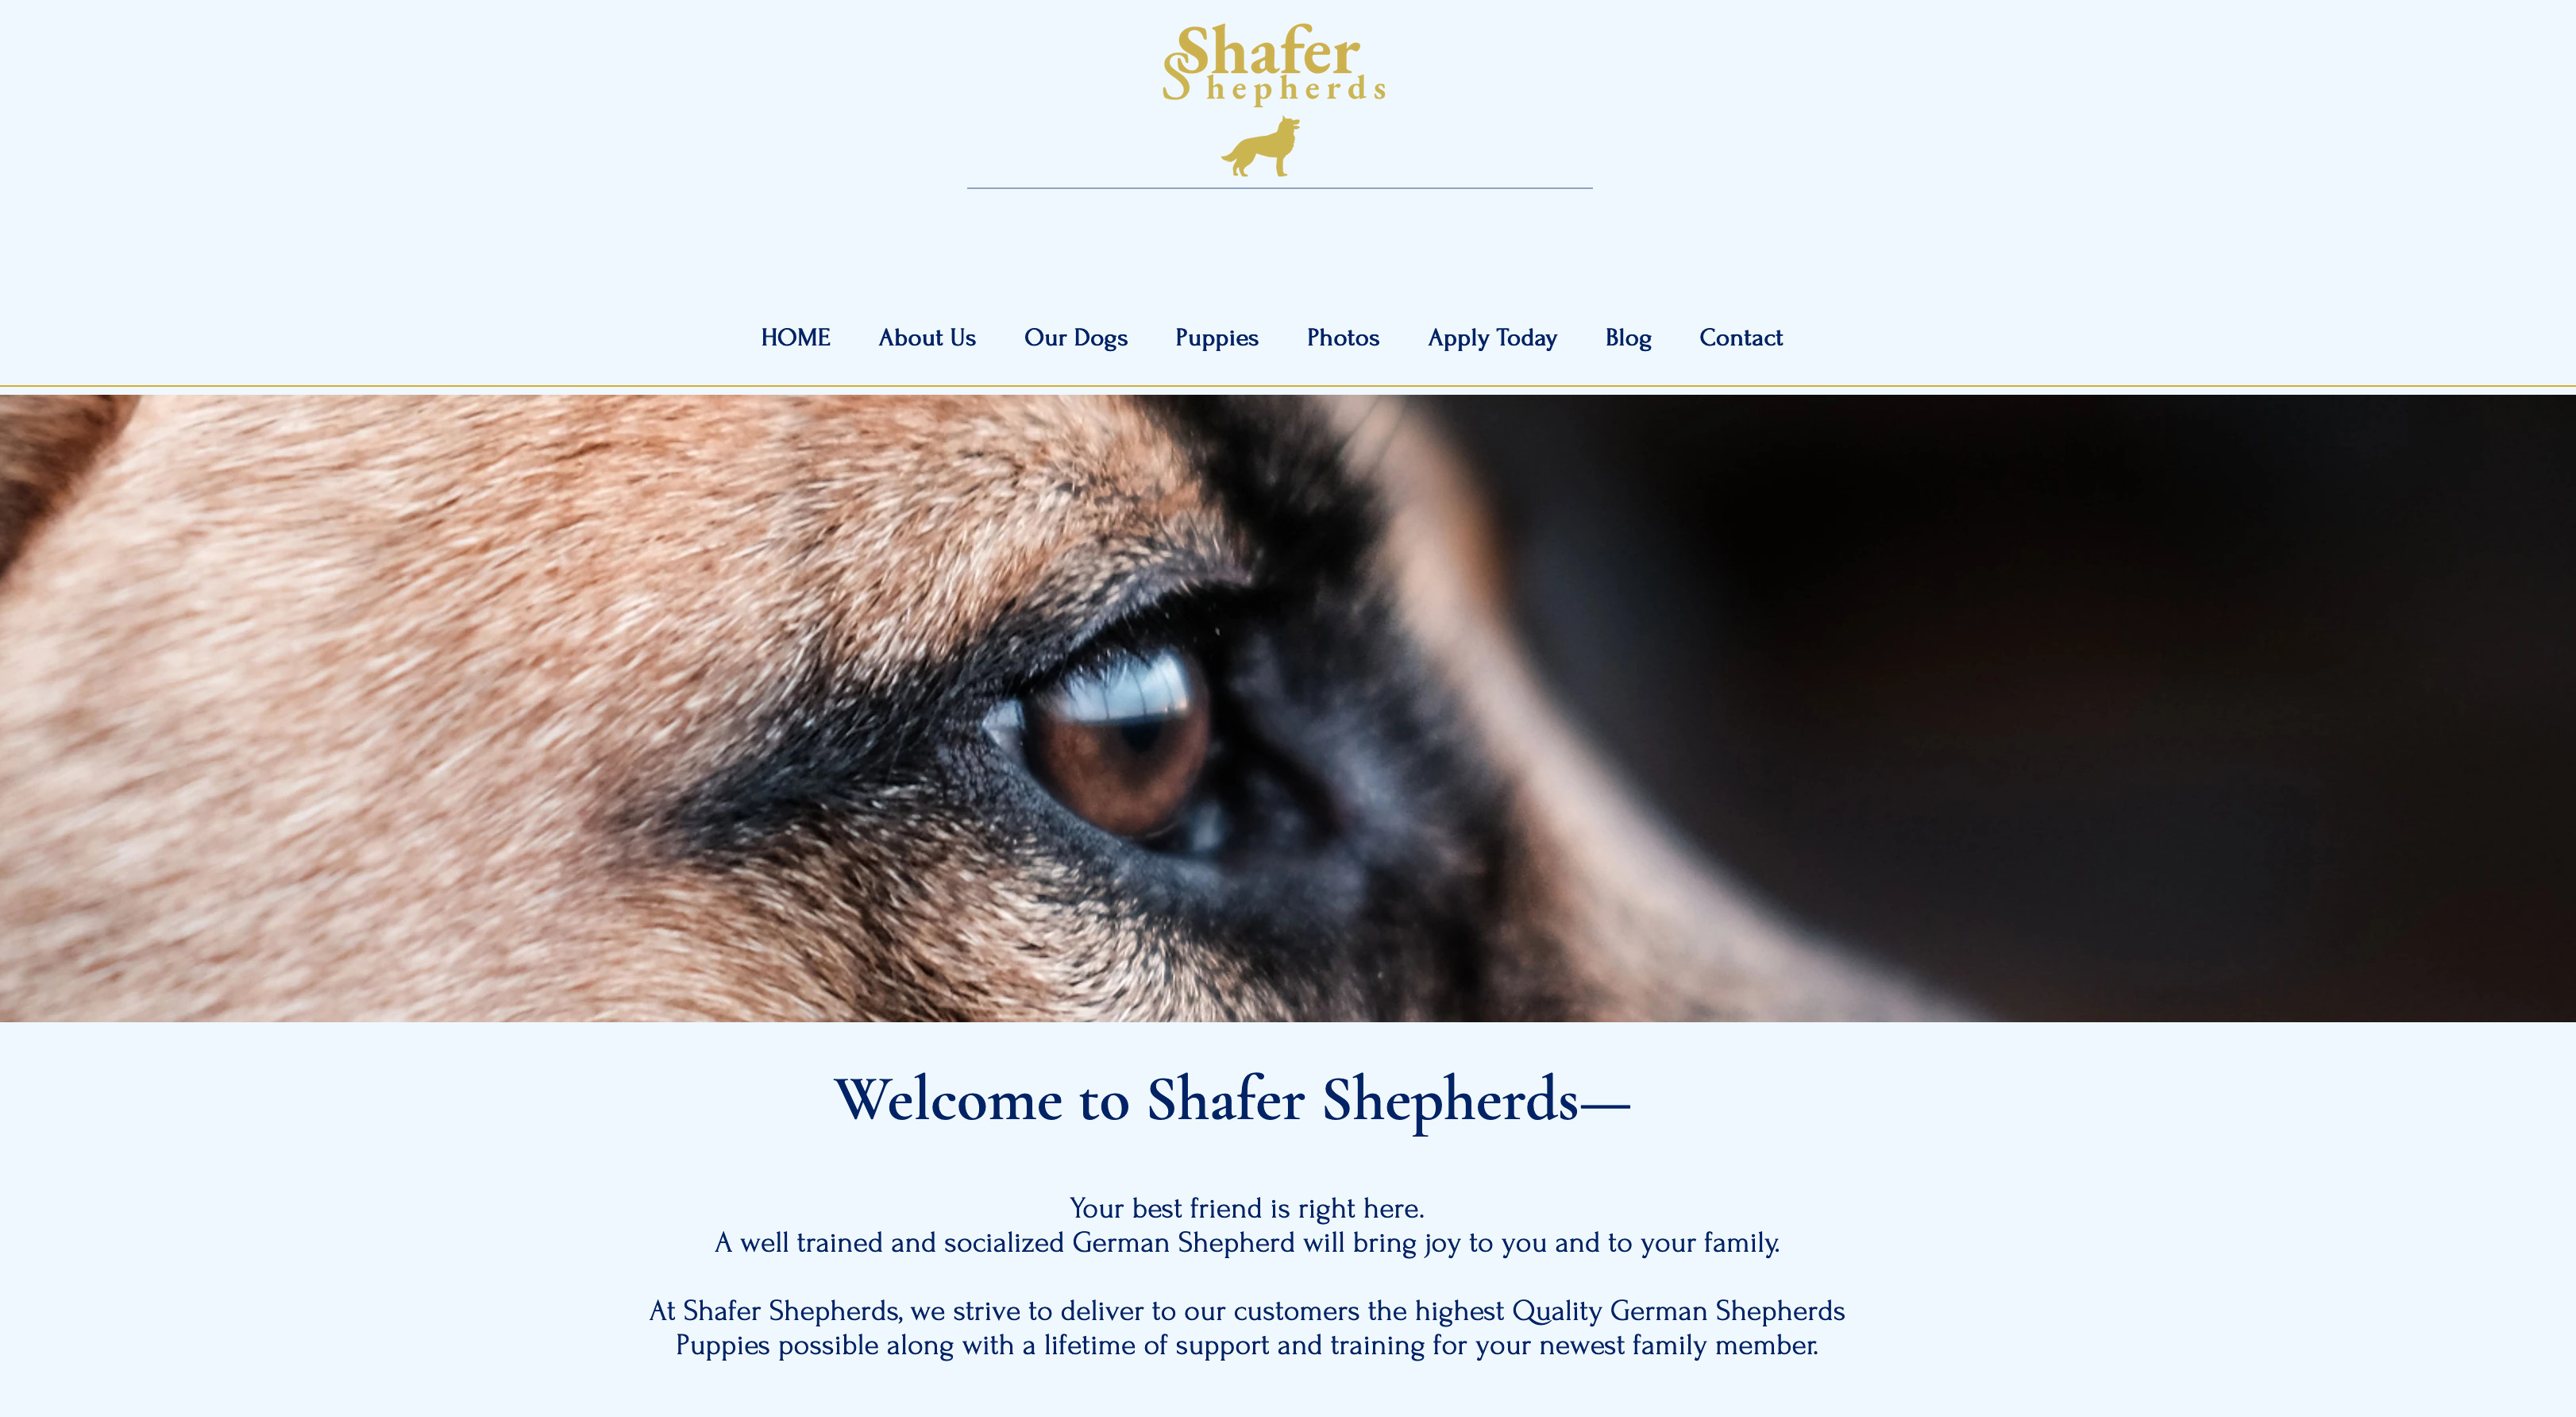 Shafer Shepherds